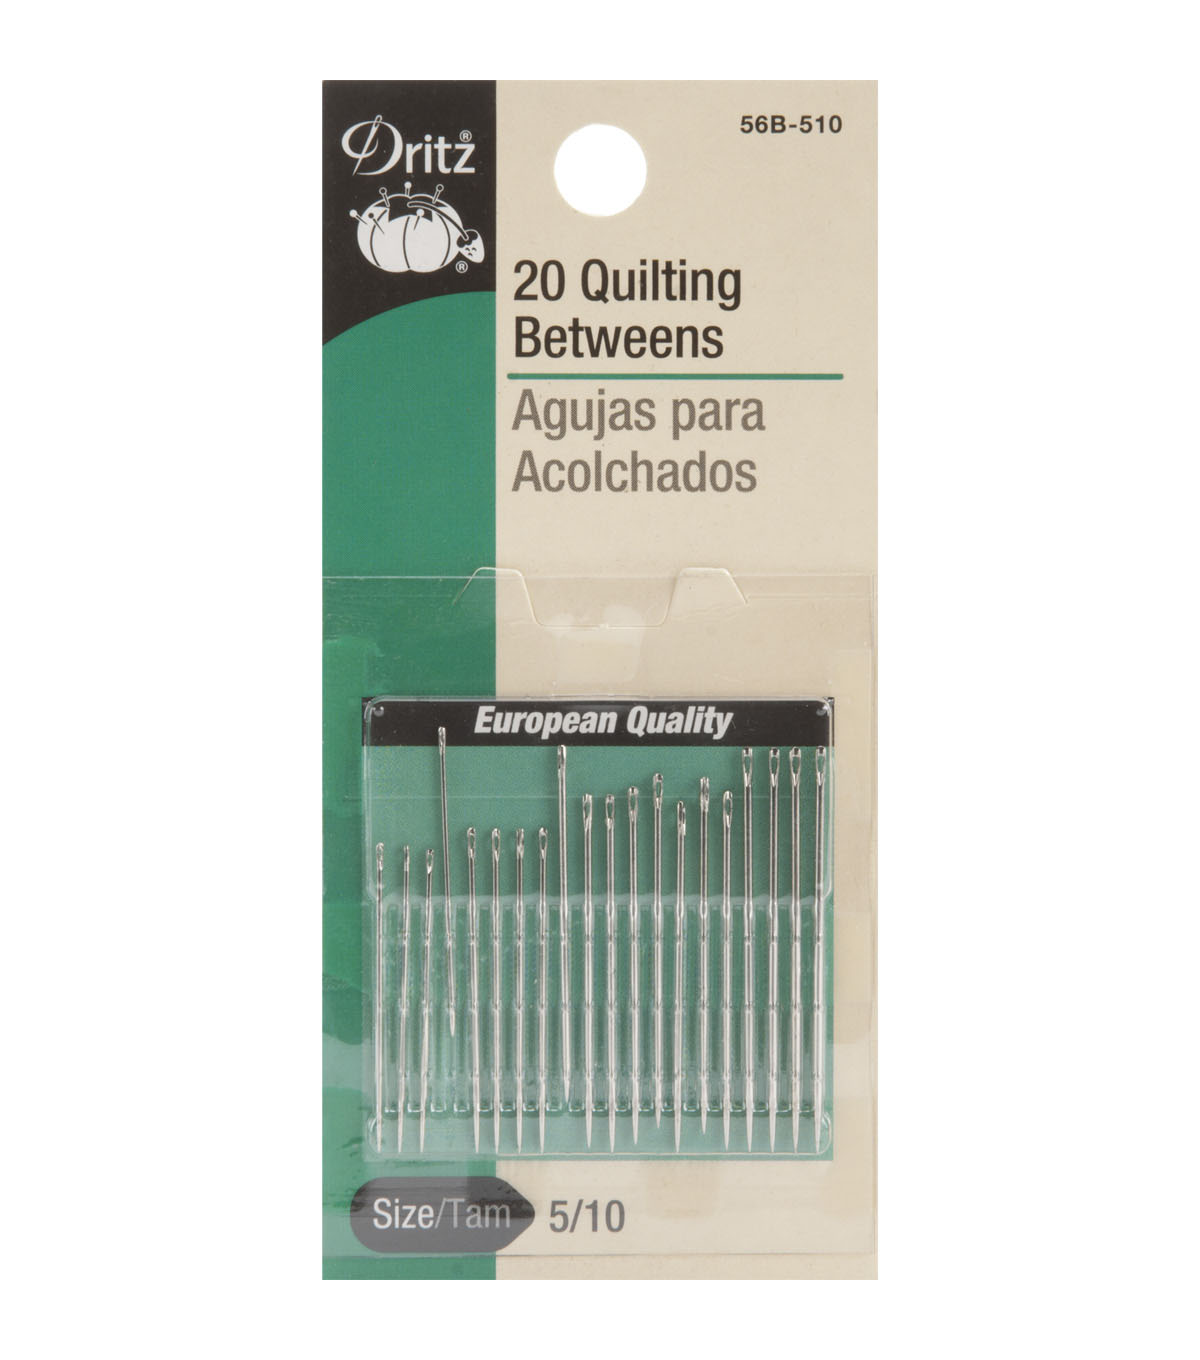 Dritz Quilting Betweens Hand Needles 20pcs Size 5/10